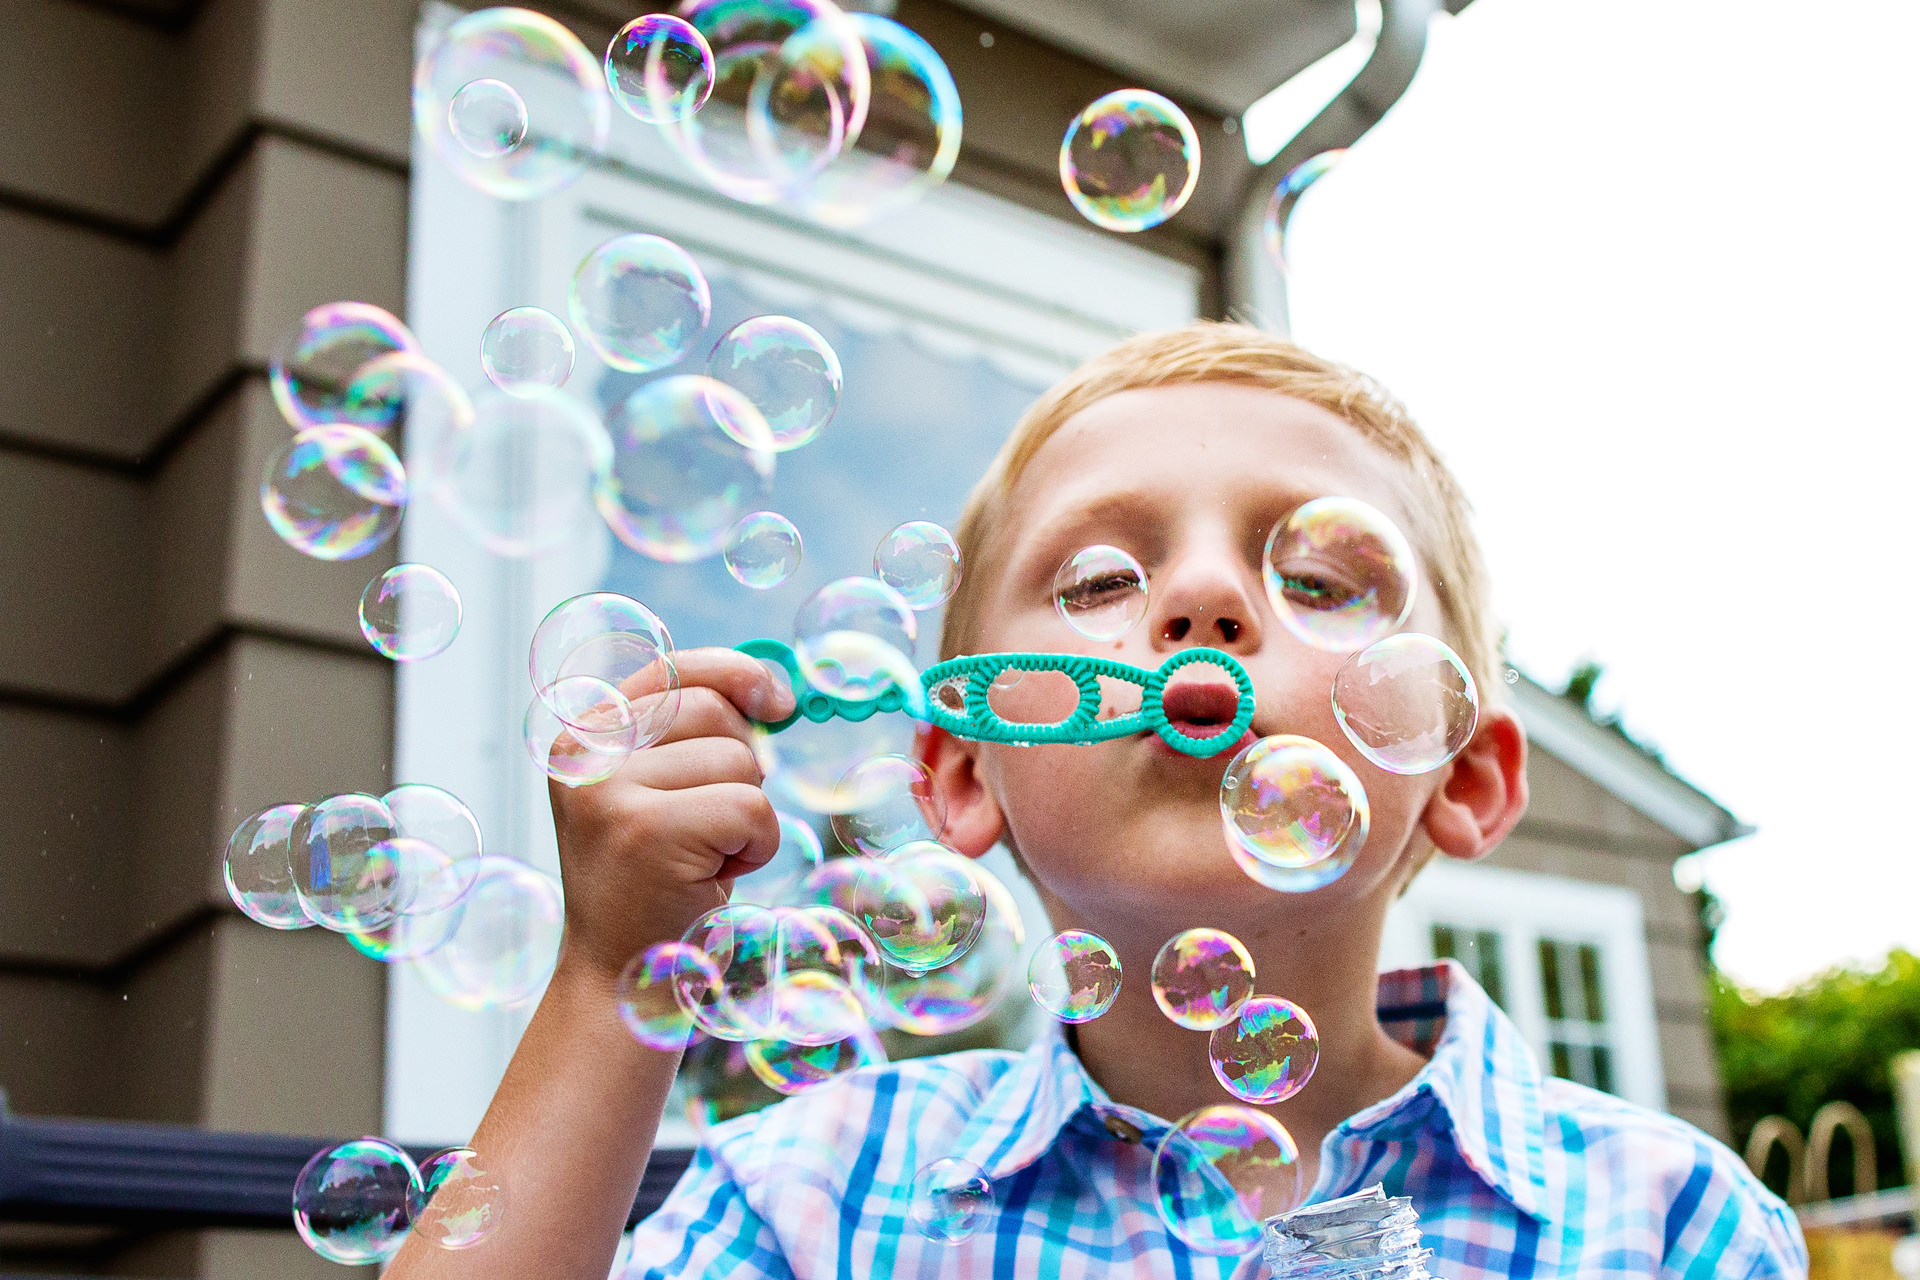 New Jersey Elopement Micro Wedding Pictures | A nephew blows bubbles at the camera